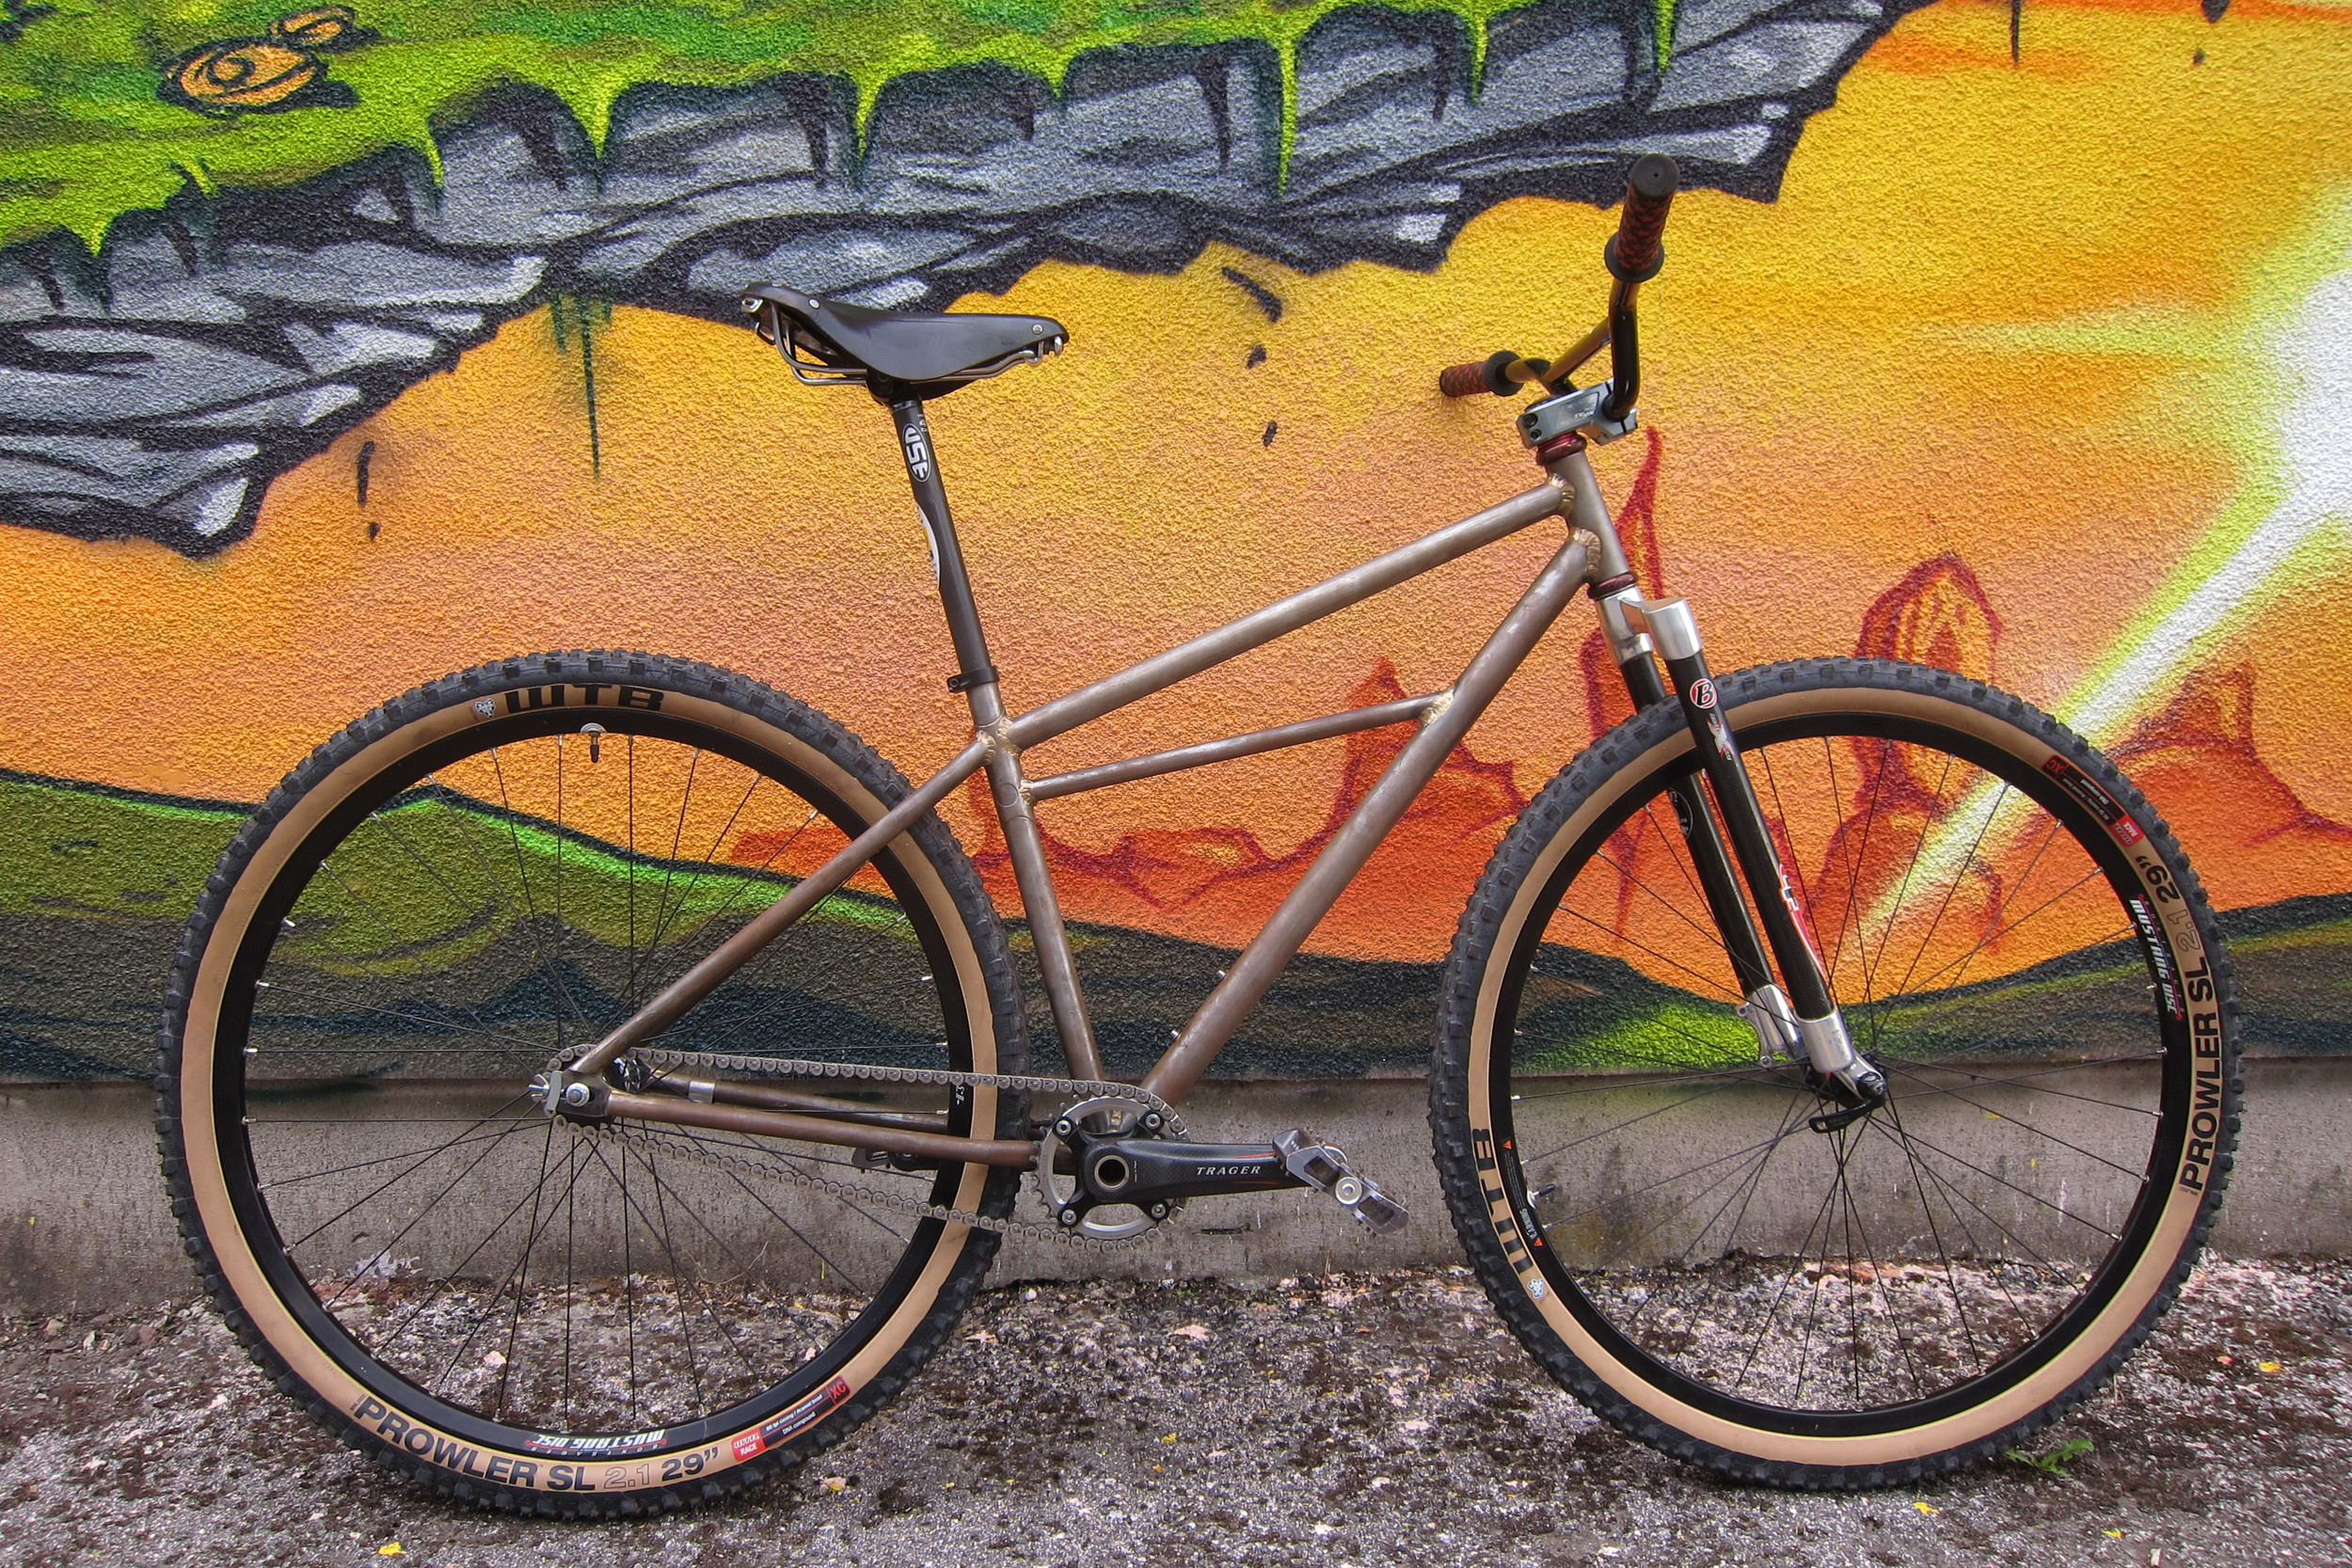 Pro-Cruiser  29er Coaster brake Cruiser inspired by the Koski Bros. but imagined in another universe. Pure fun to ride and a good way to use up rear tyres.